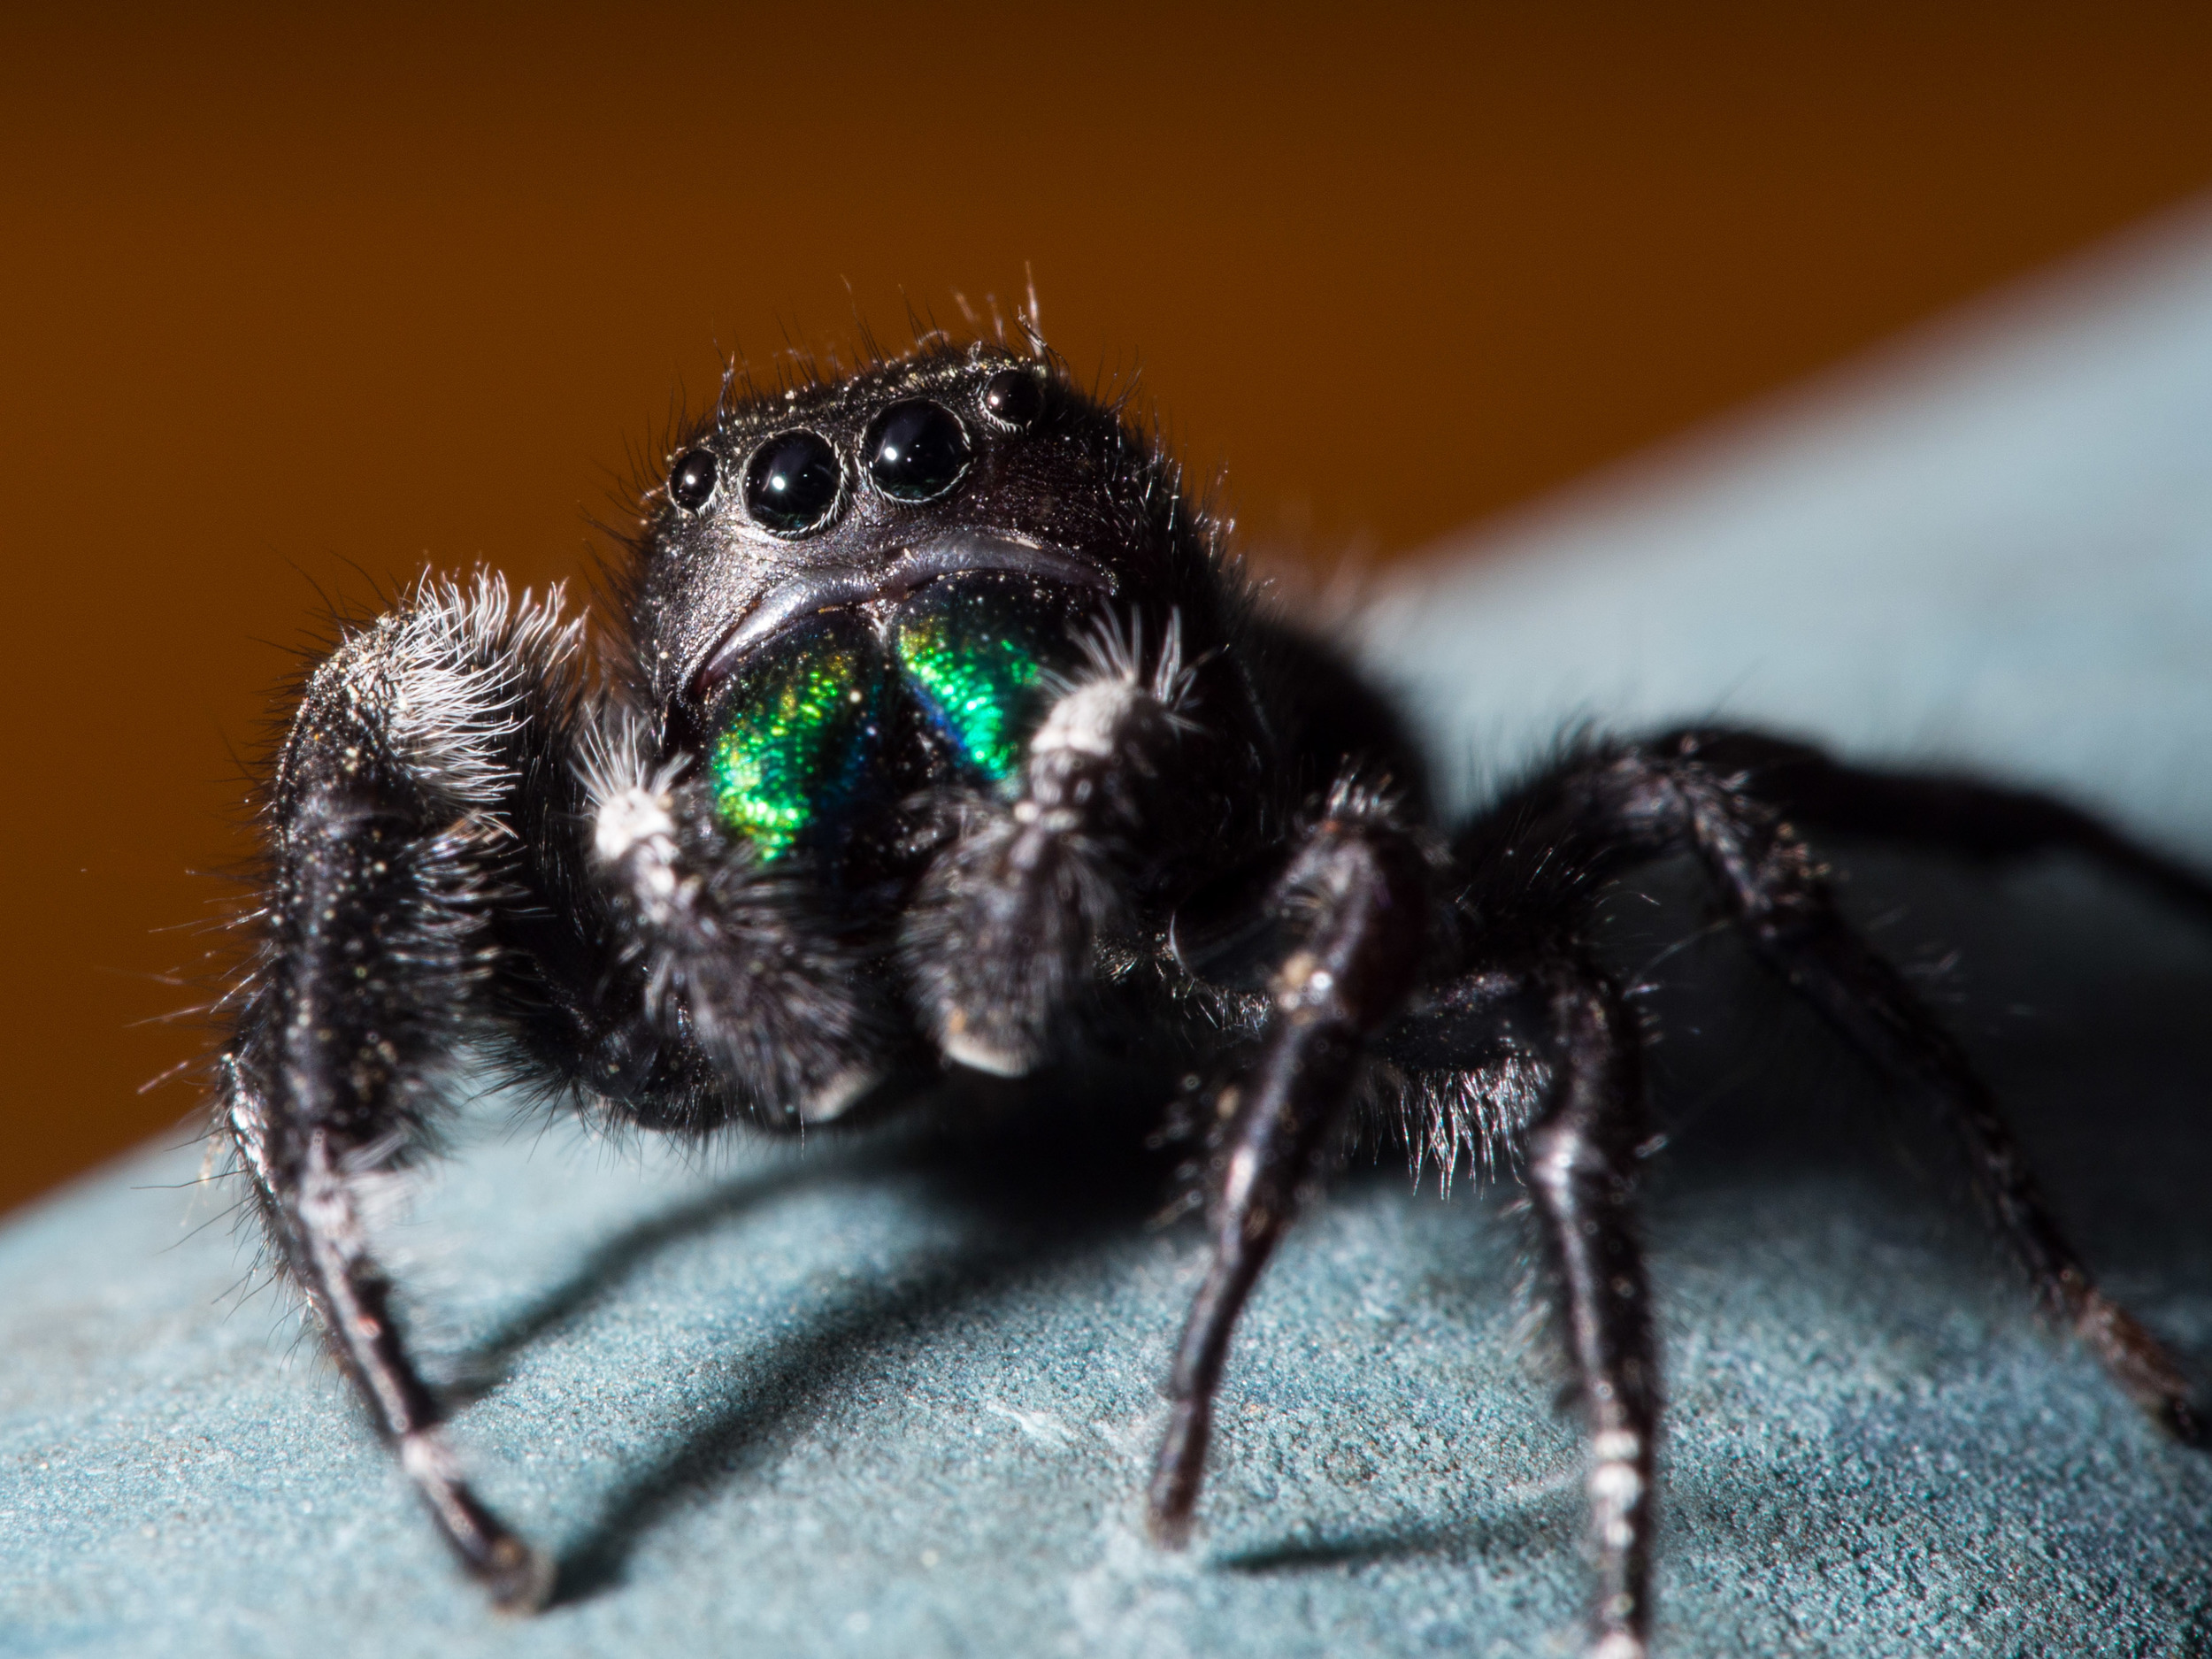 Little jumping spider no larger than my index fingernail.